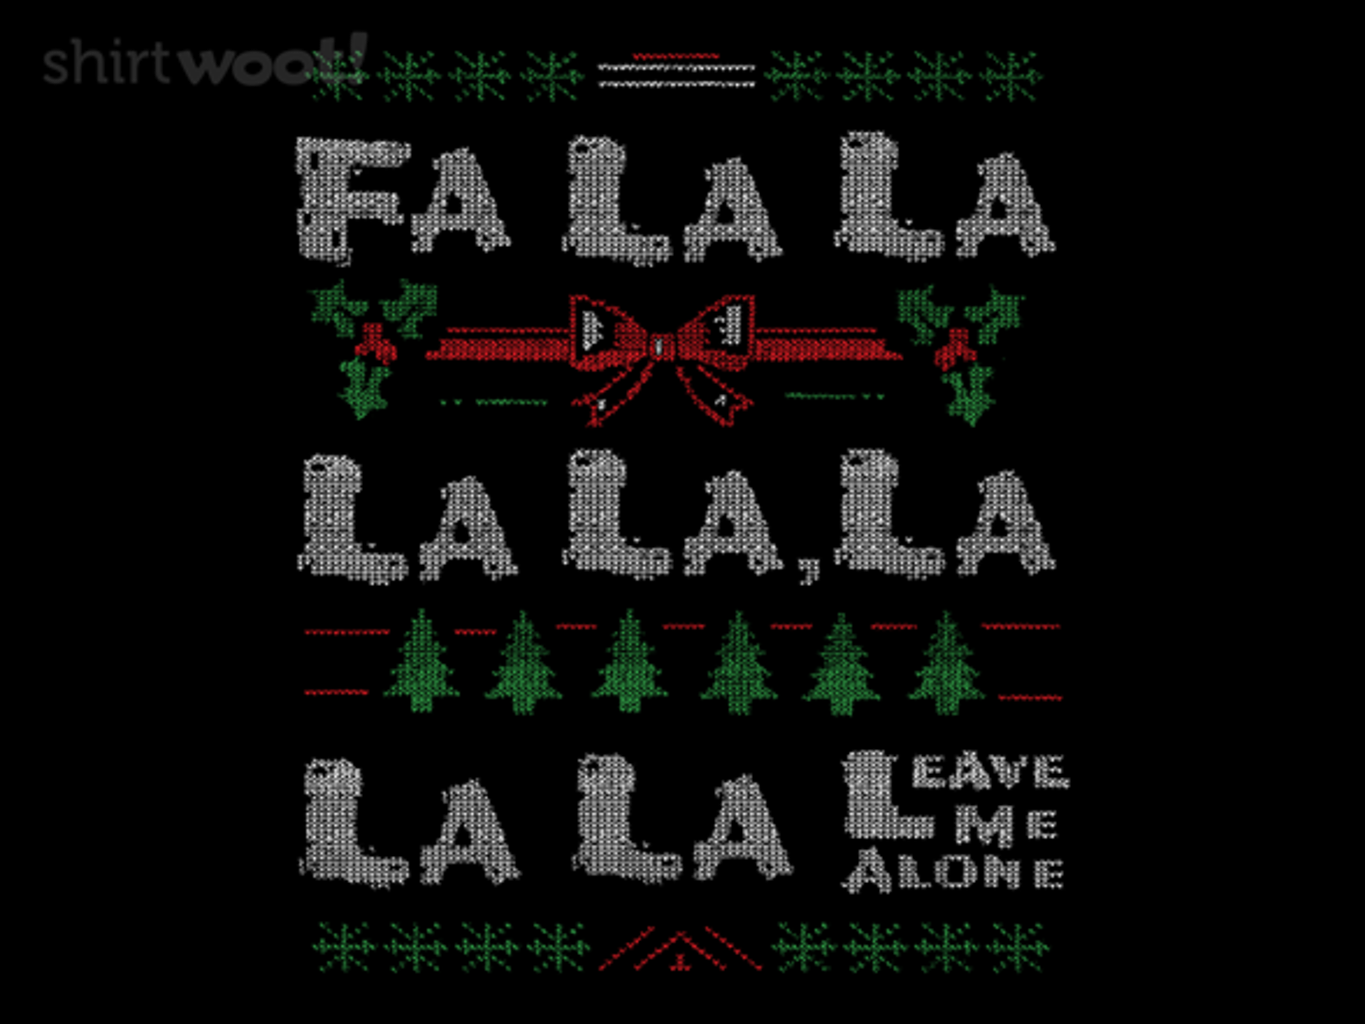 Woot!: Introverts Christmas